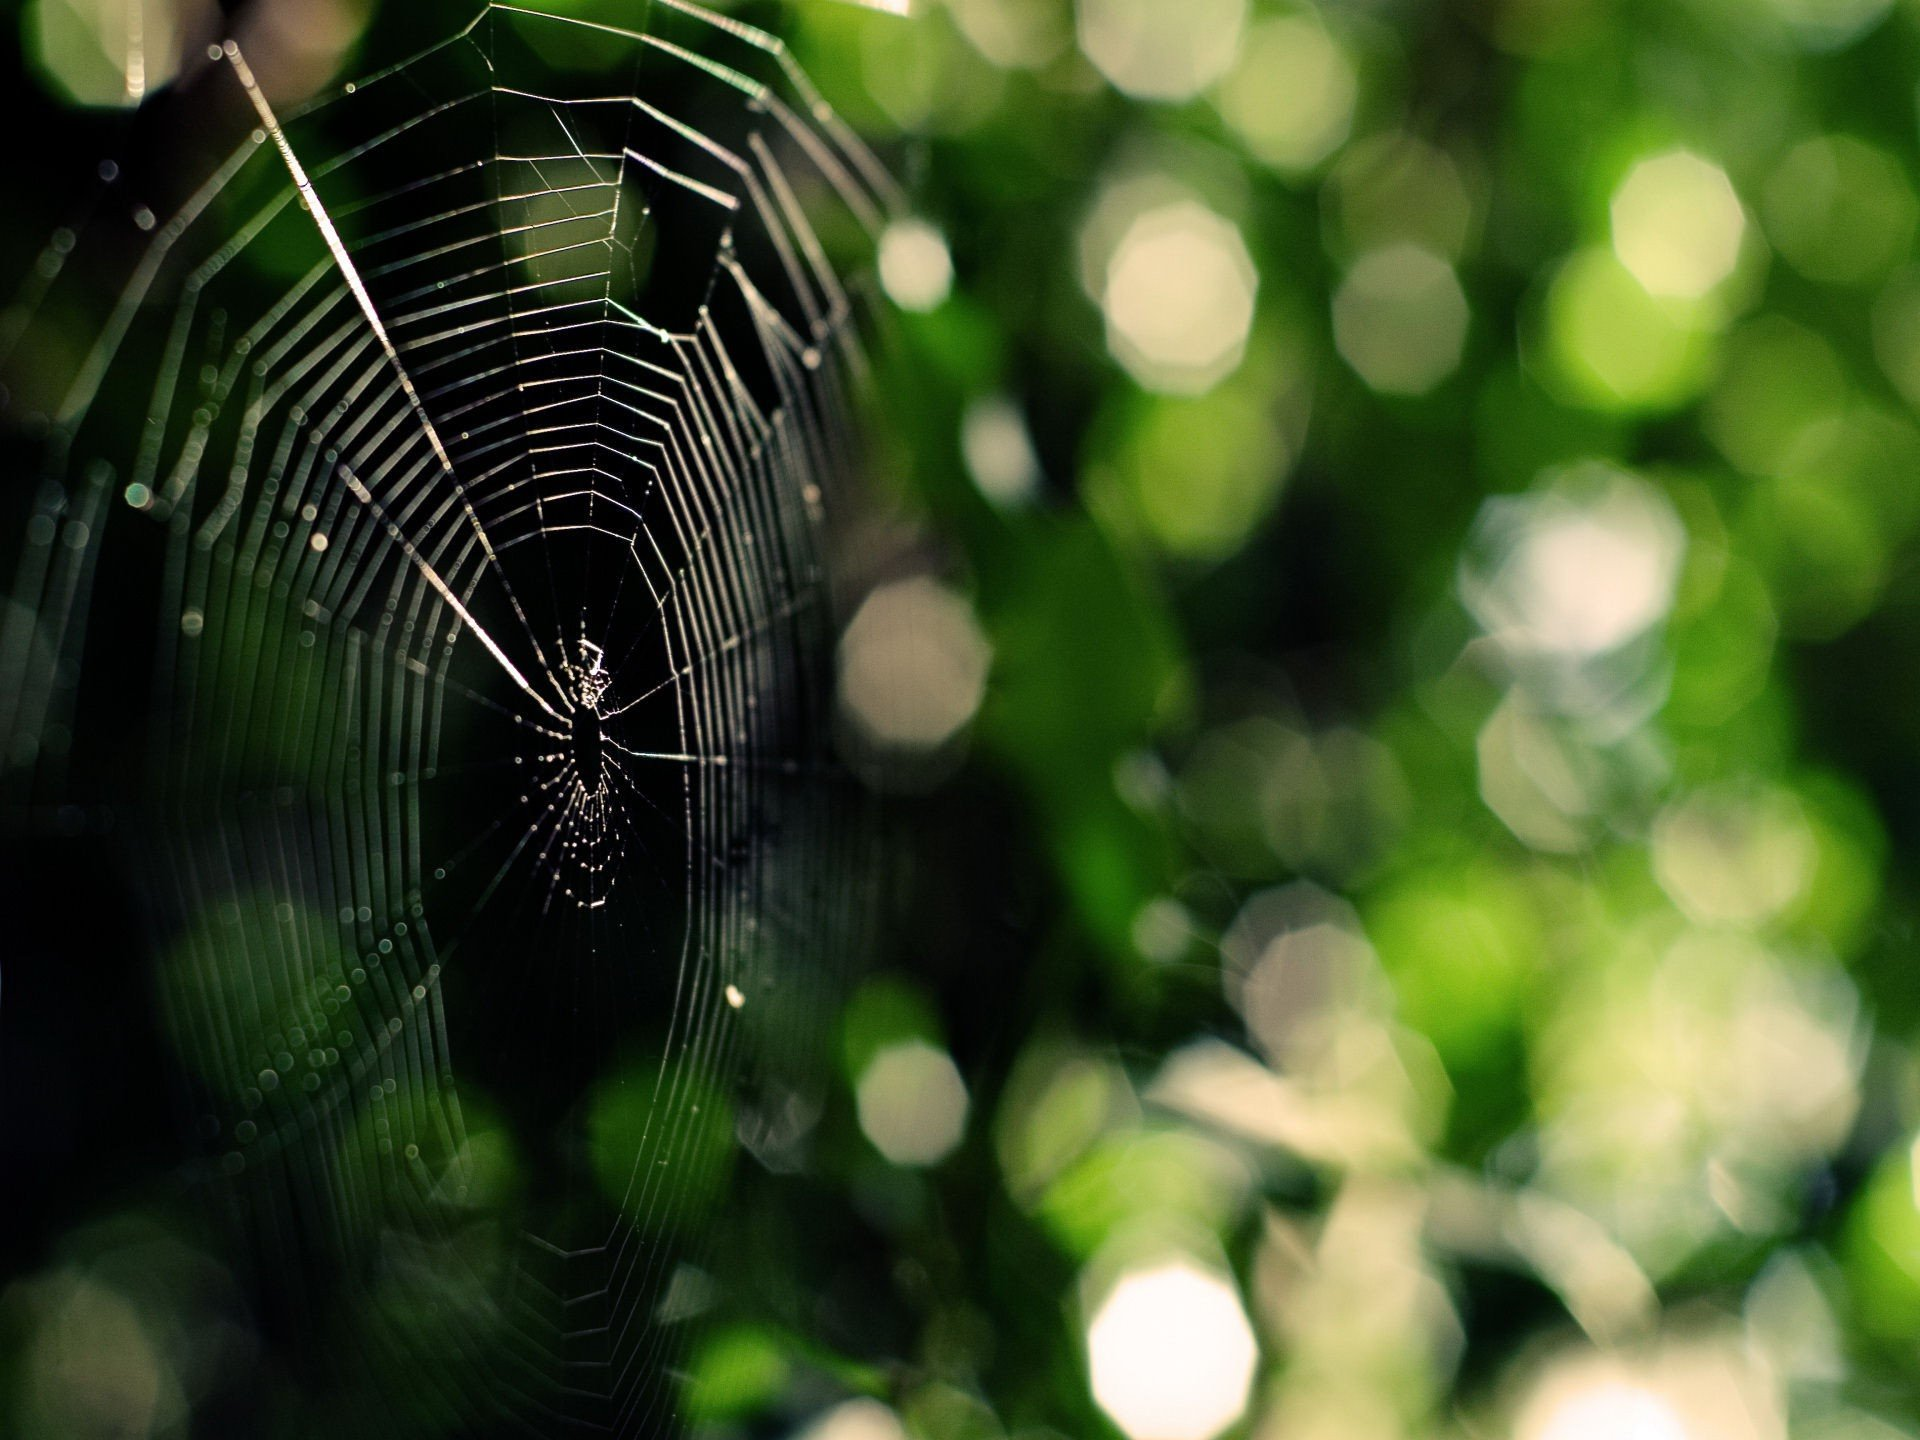 Awesome Spider Web free wallpaper ID:184771 for hd 1920x1440 desktop